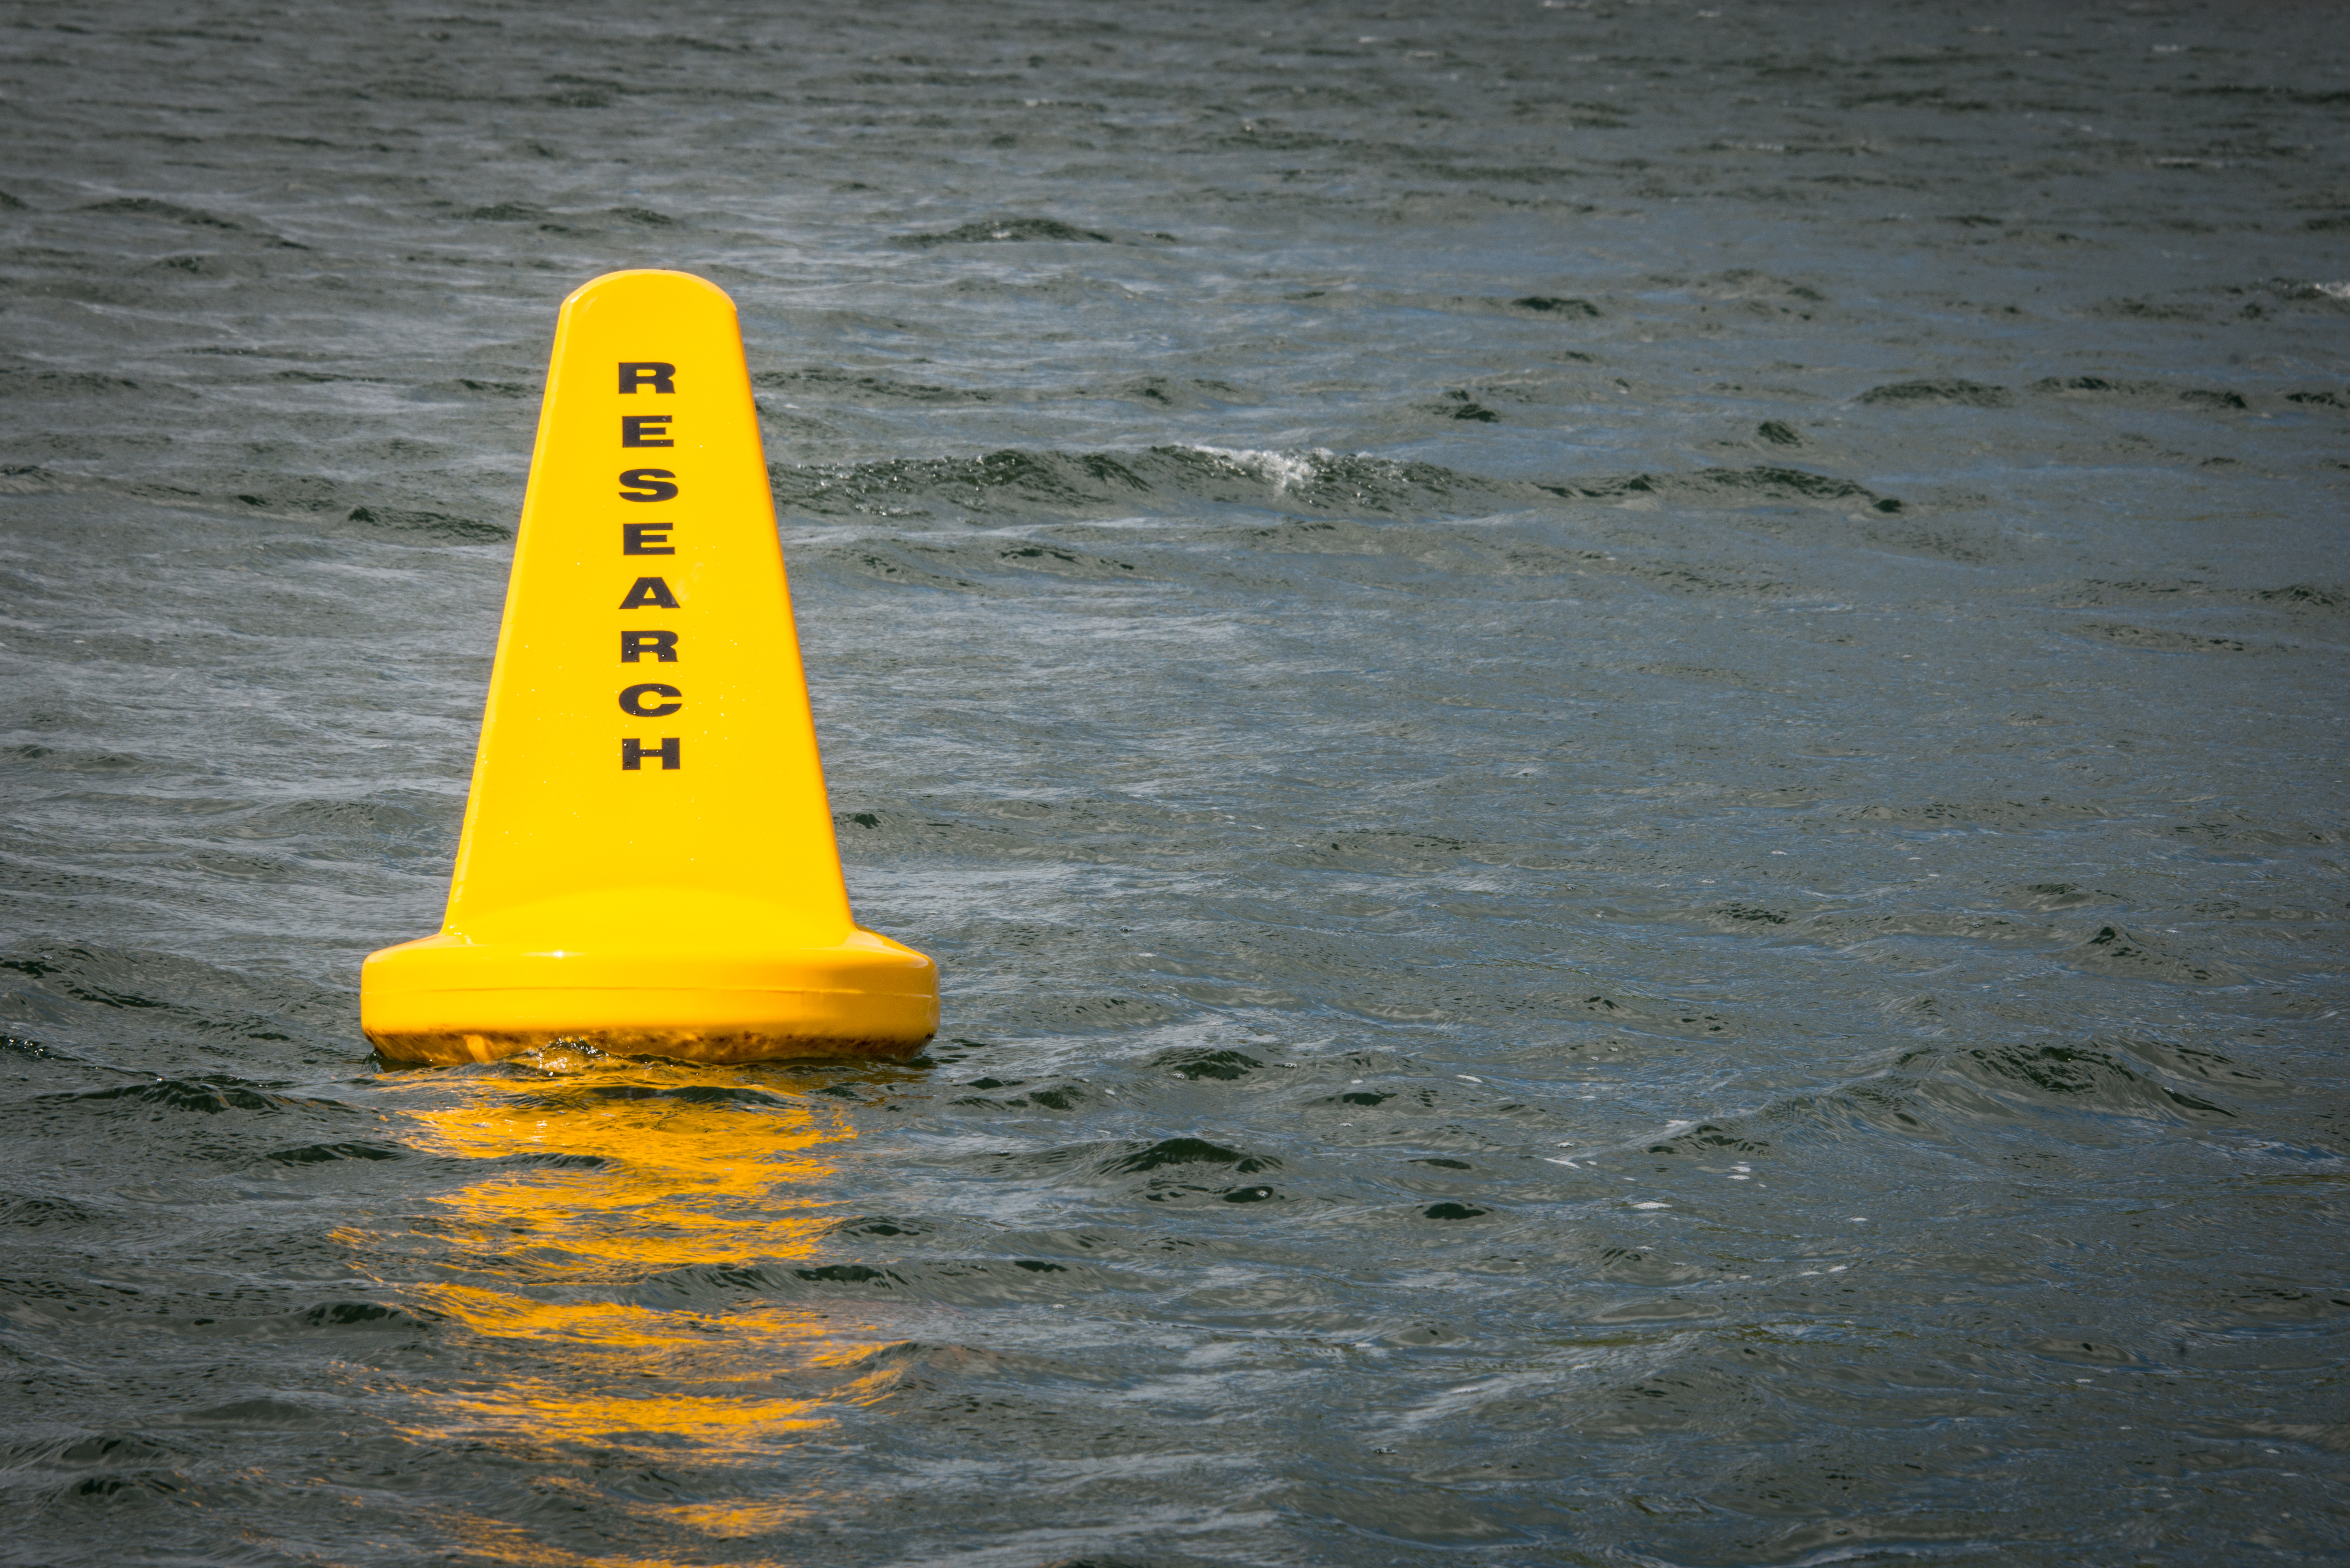 Acoustic buoy